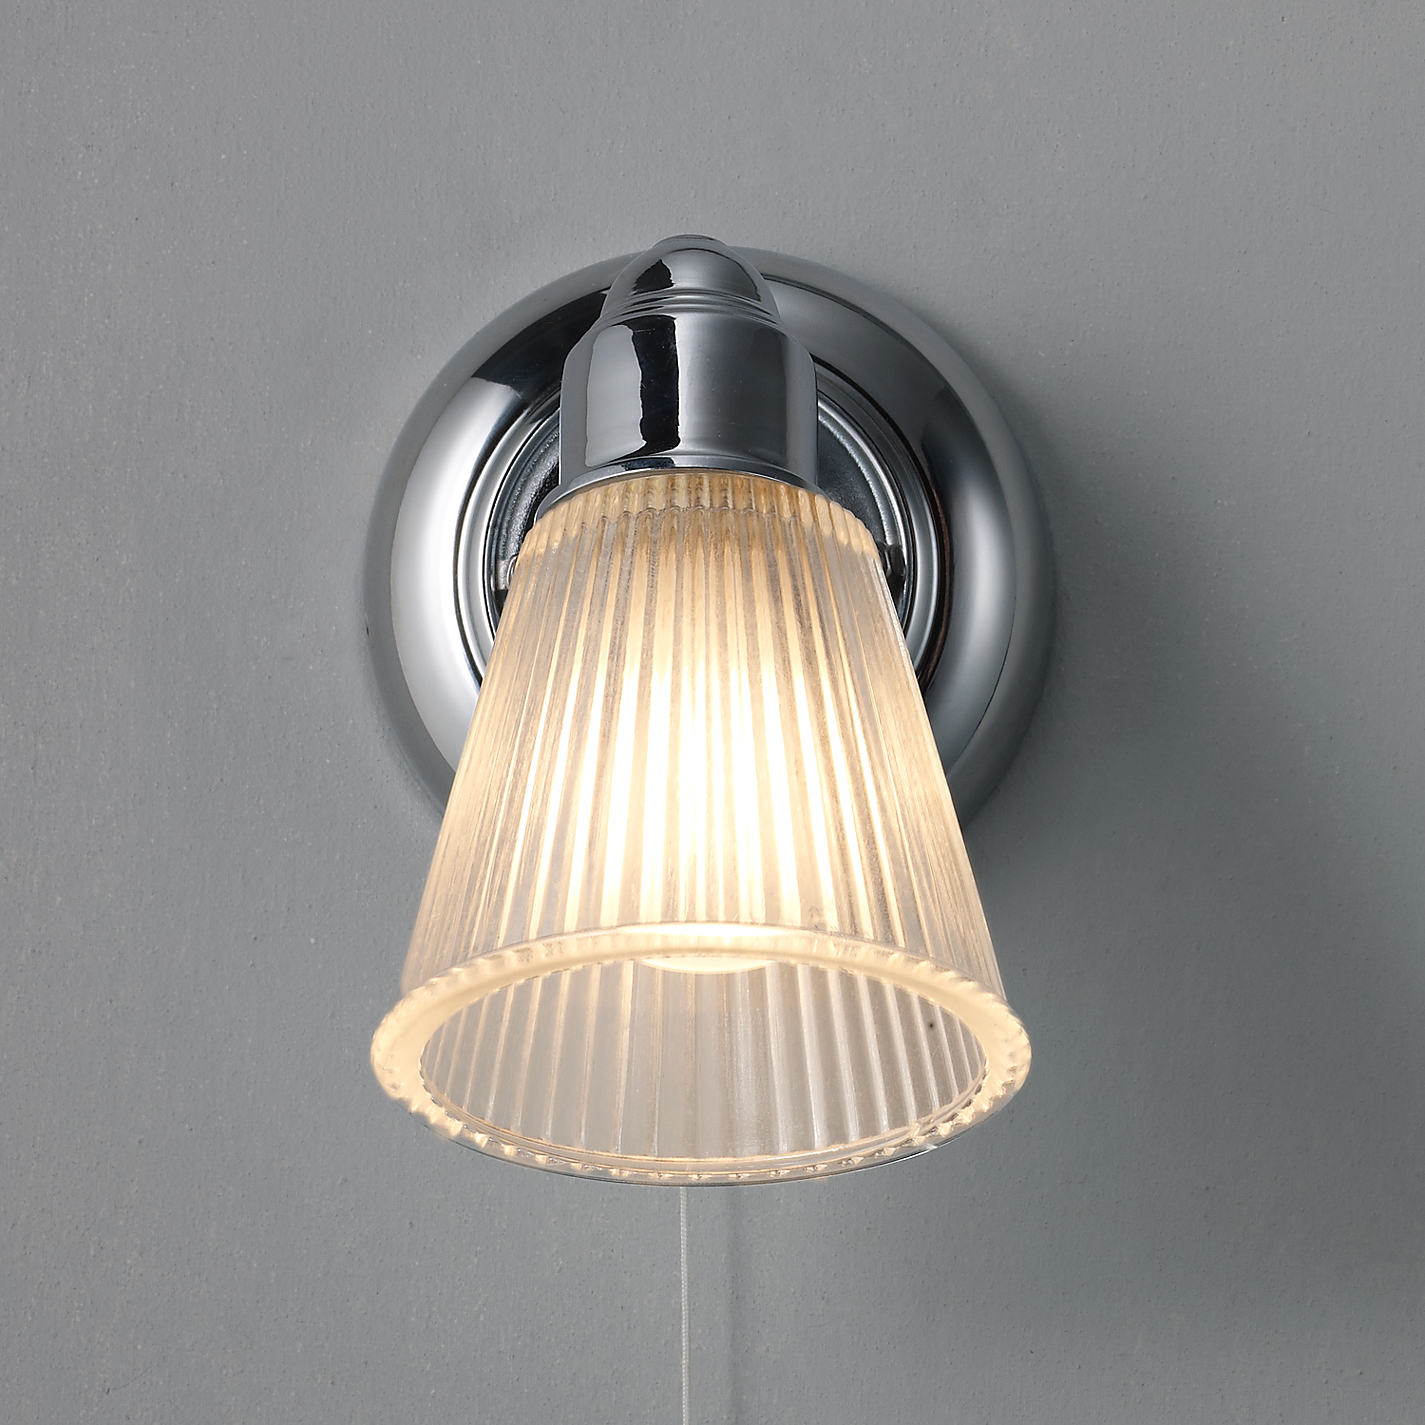 Bathroom Lights John Lewis buy john lewis lucca single bathroom spotlight | john lewis